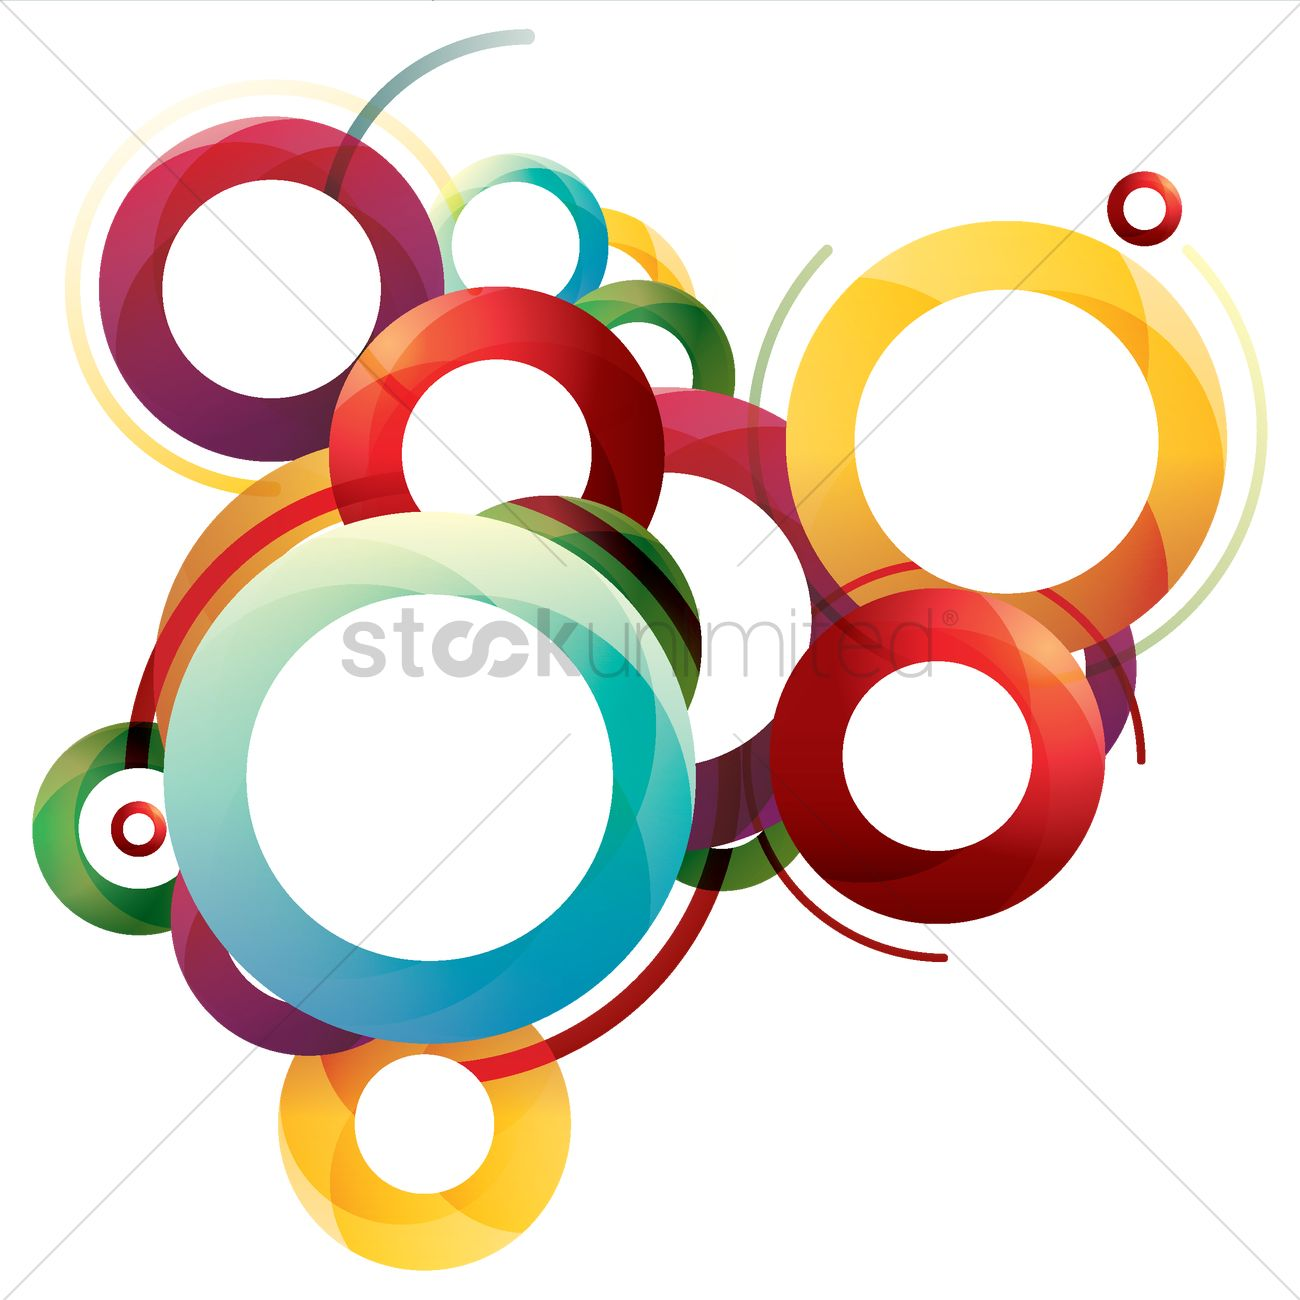 Abstract Shapes Design Vector Image 2006578 Stockunlimited